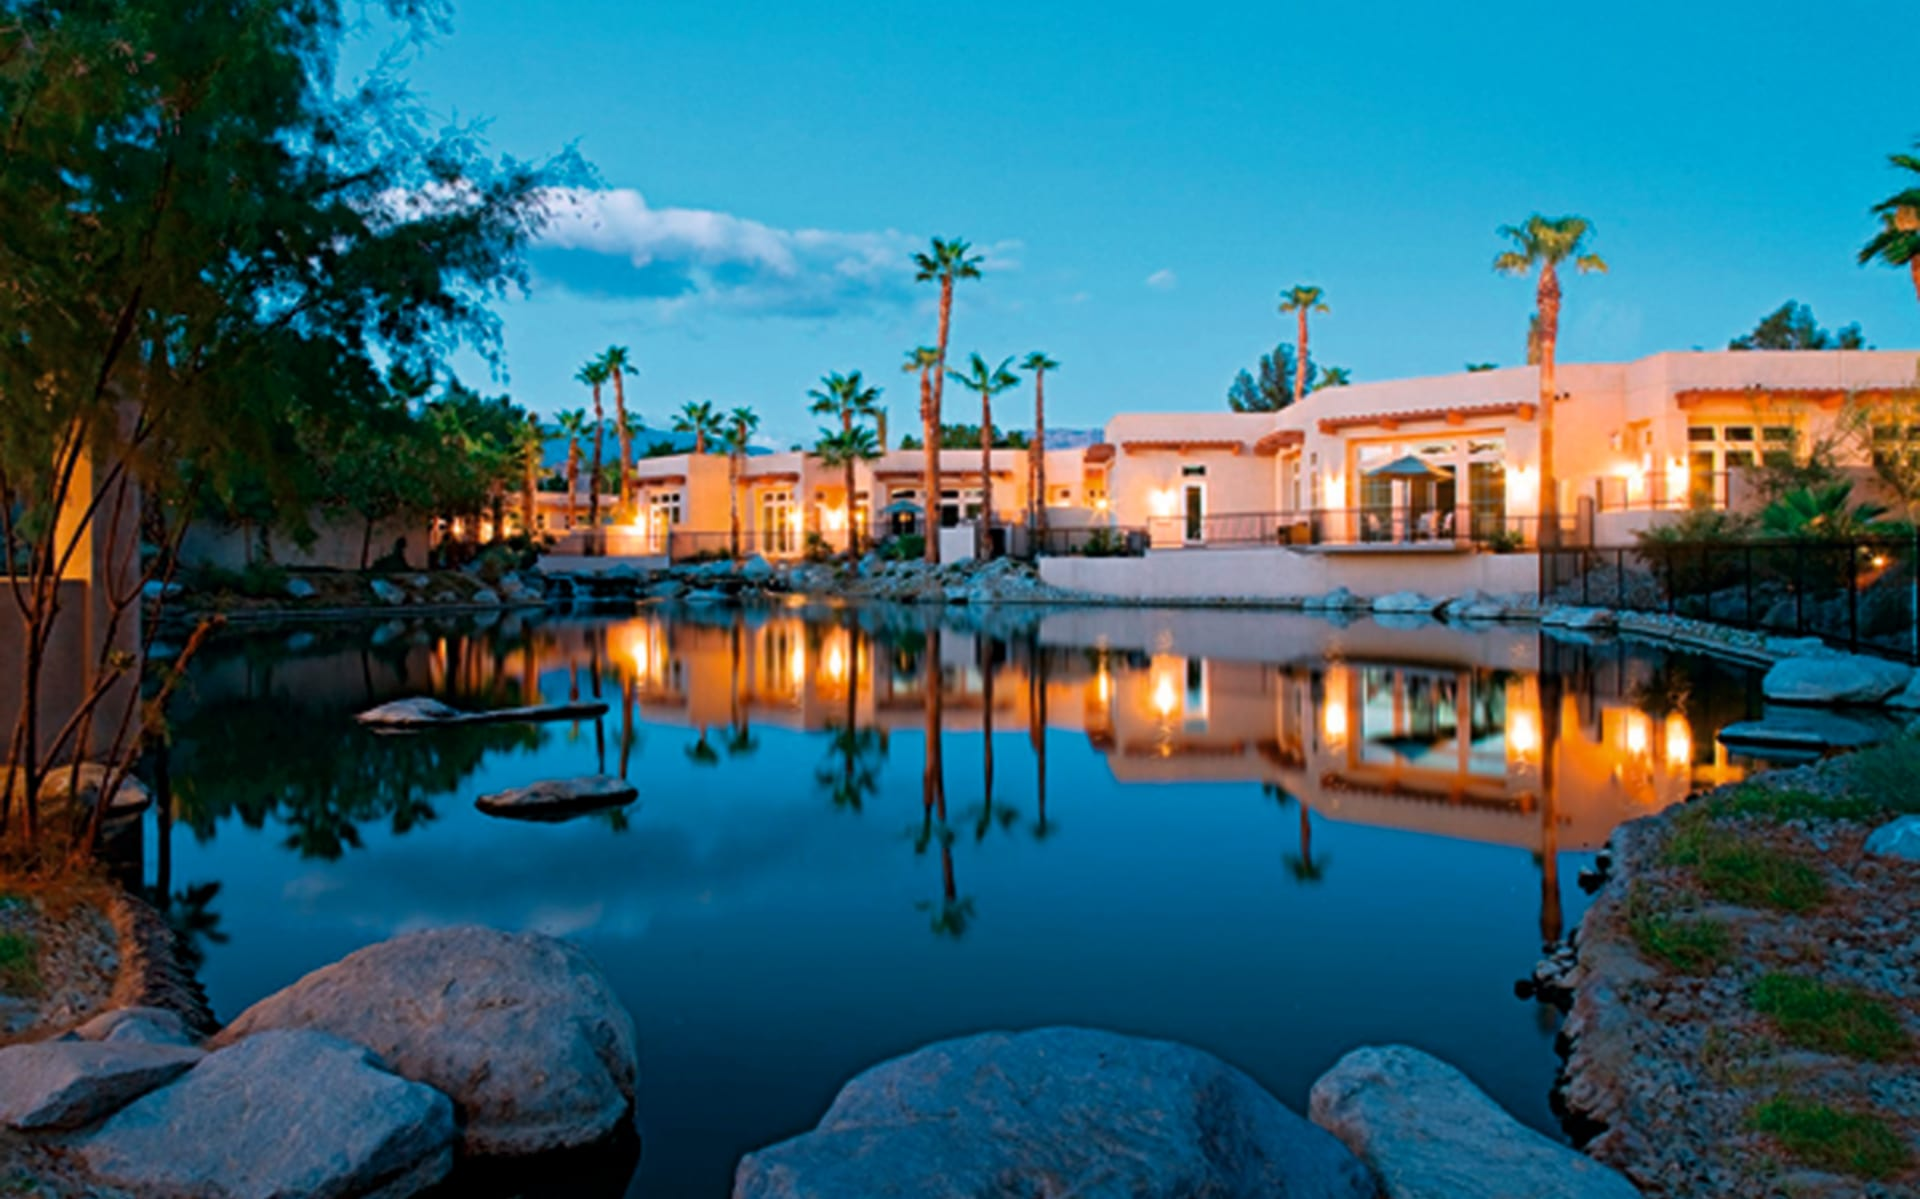 Hyatt Regency Indian Wells Resort & Spa: exterior hyatt regency indian wells resort and spa see hotel palmen